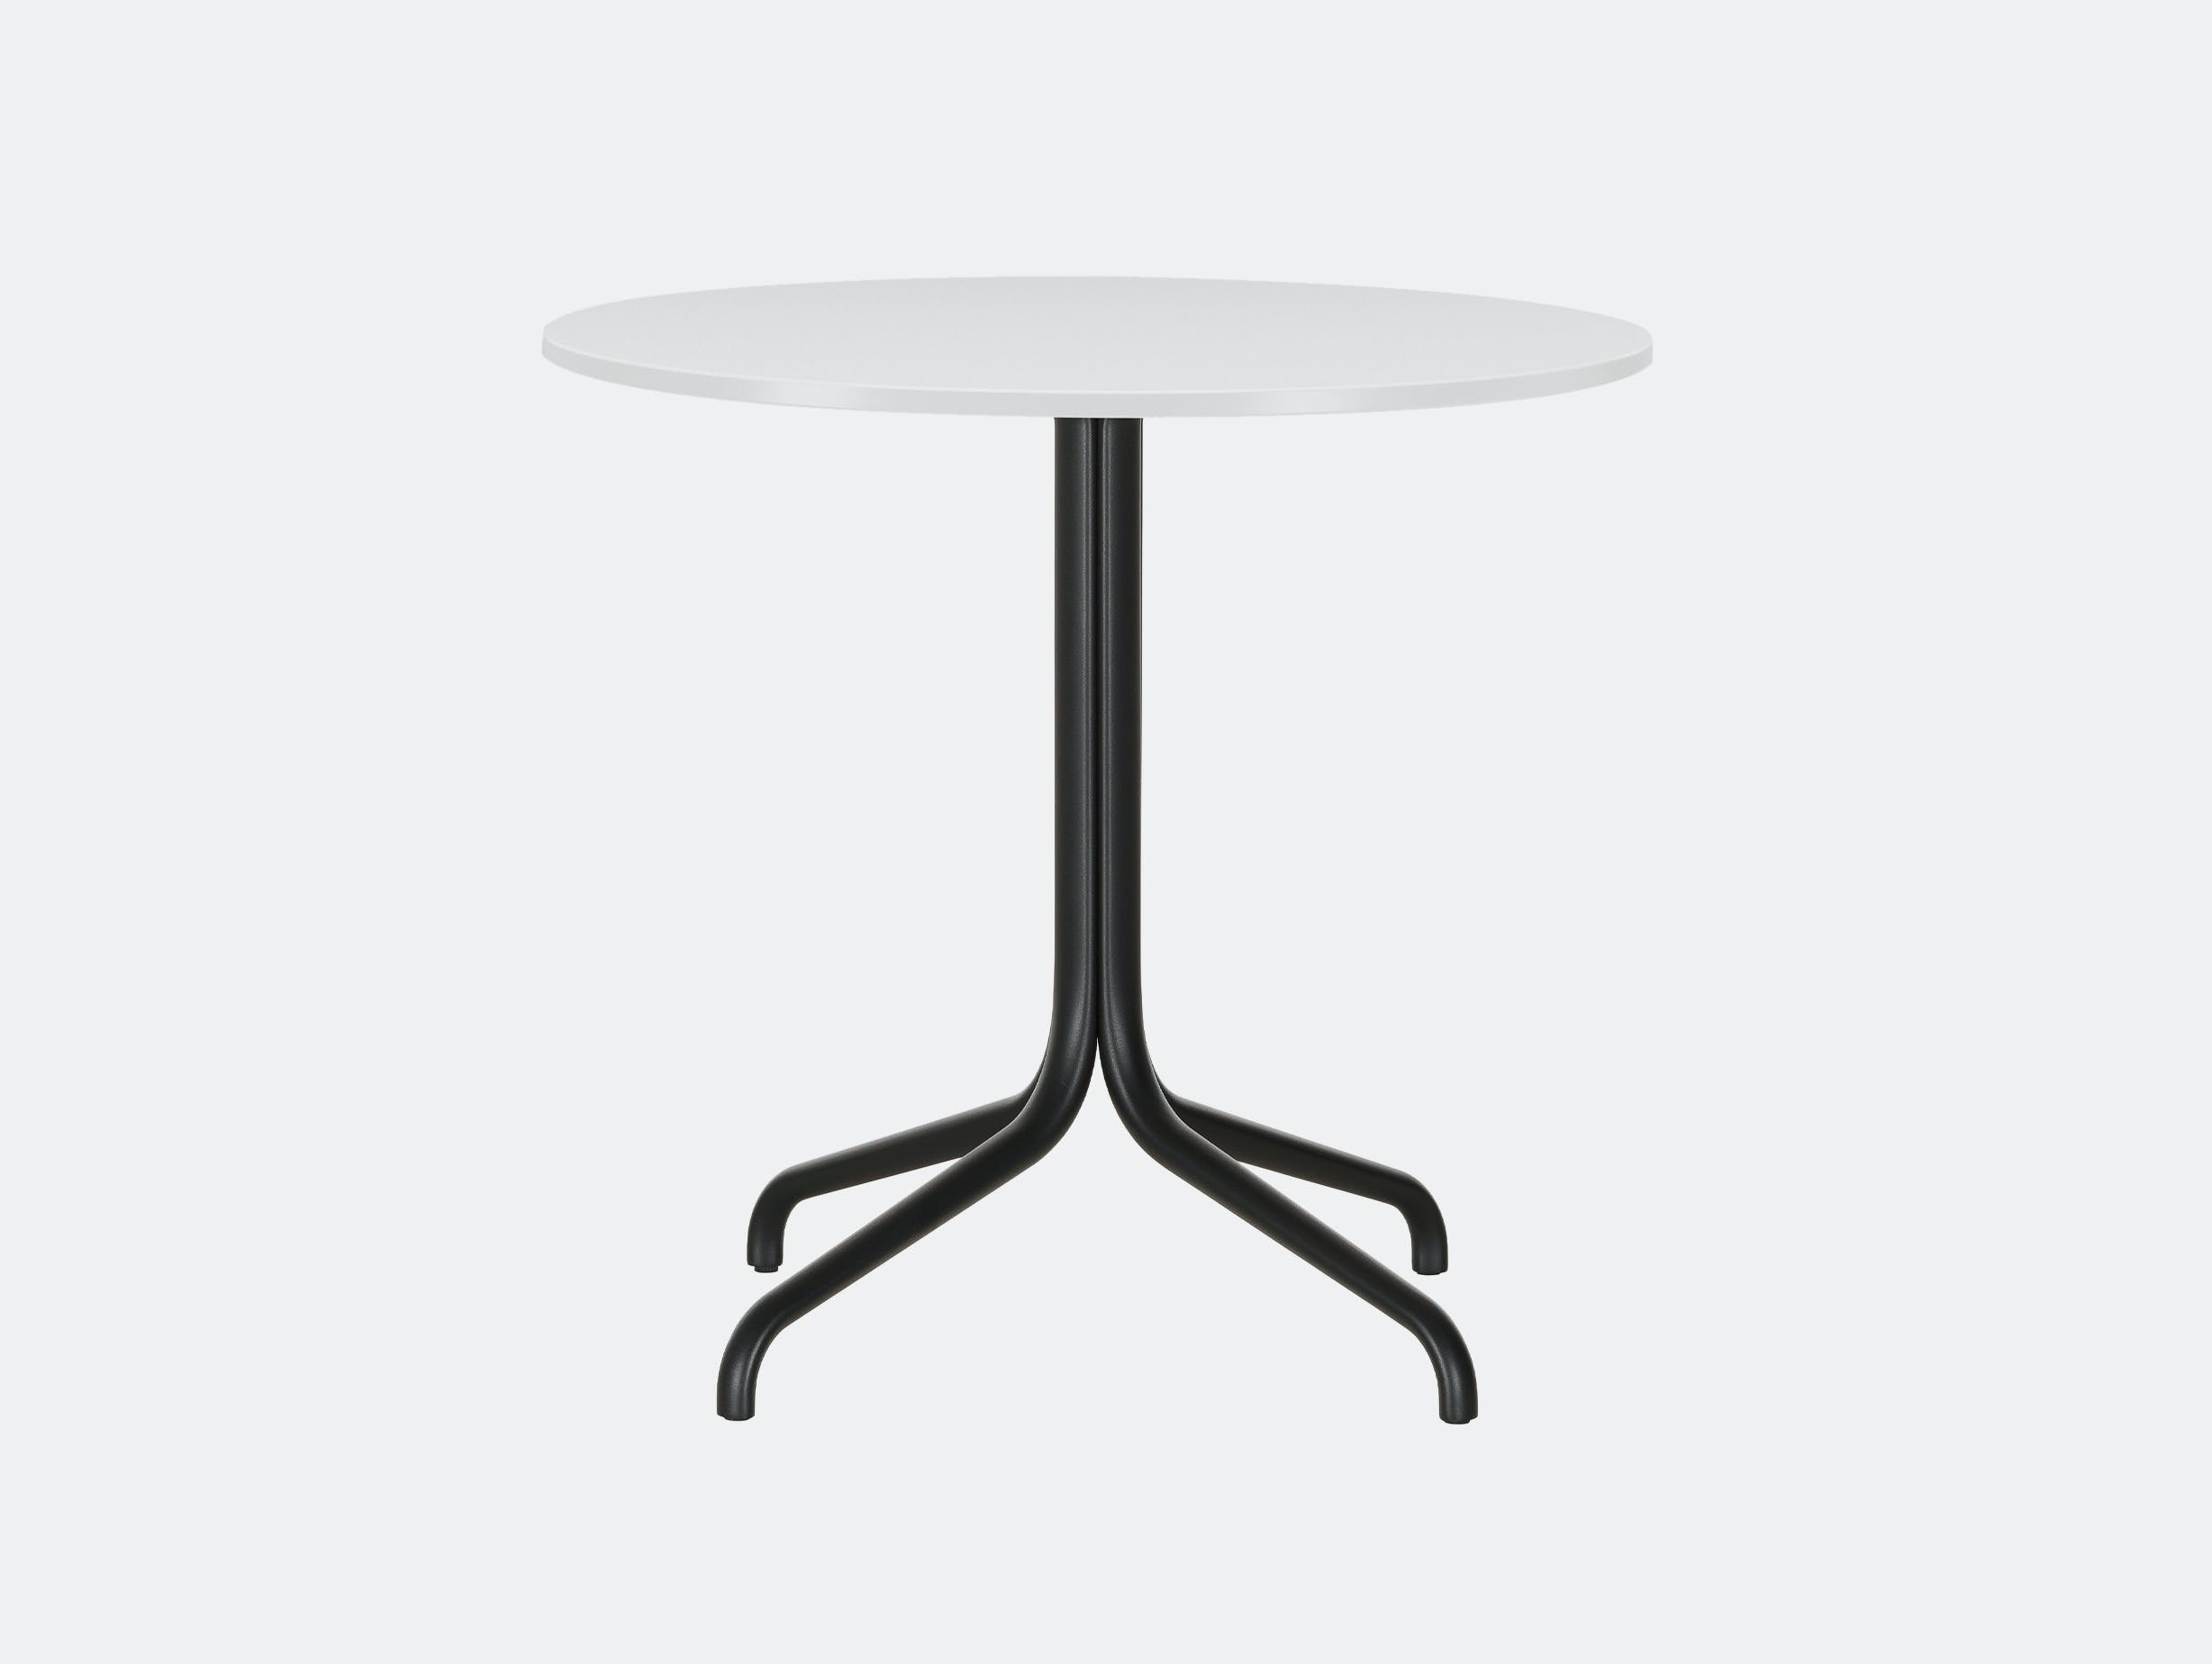 Vitra Belleville Outdoor Table White ROUND CT